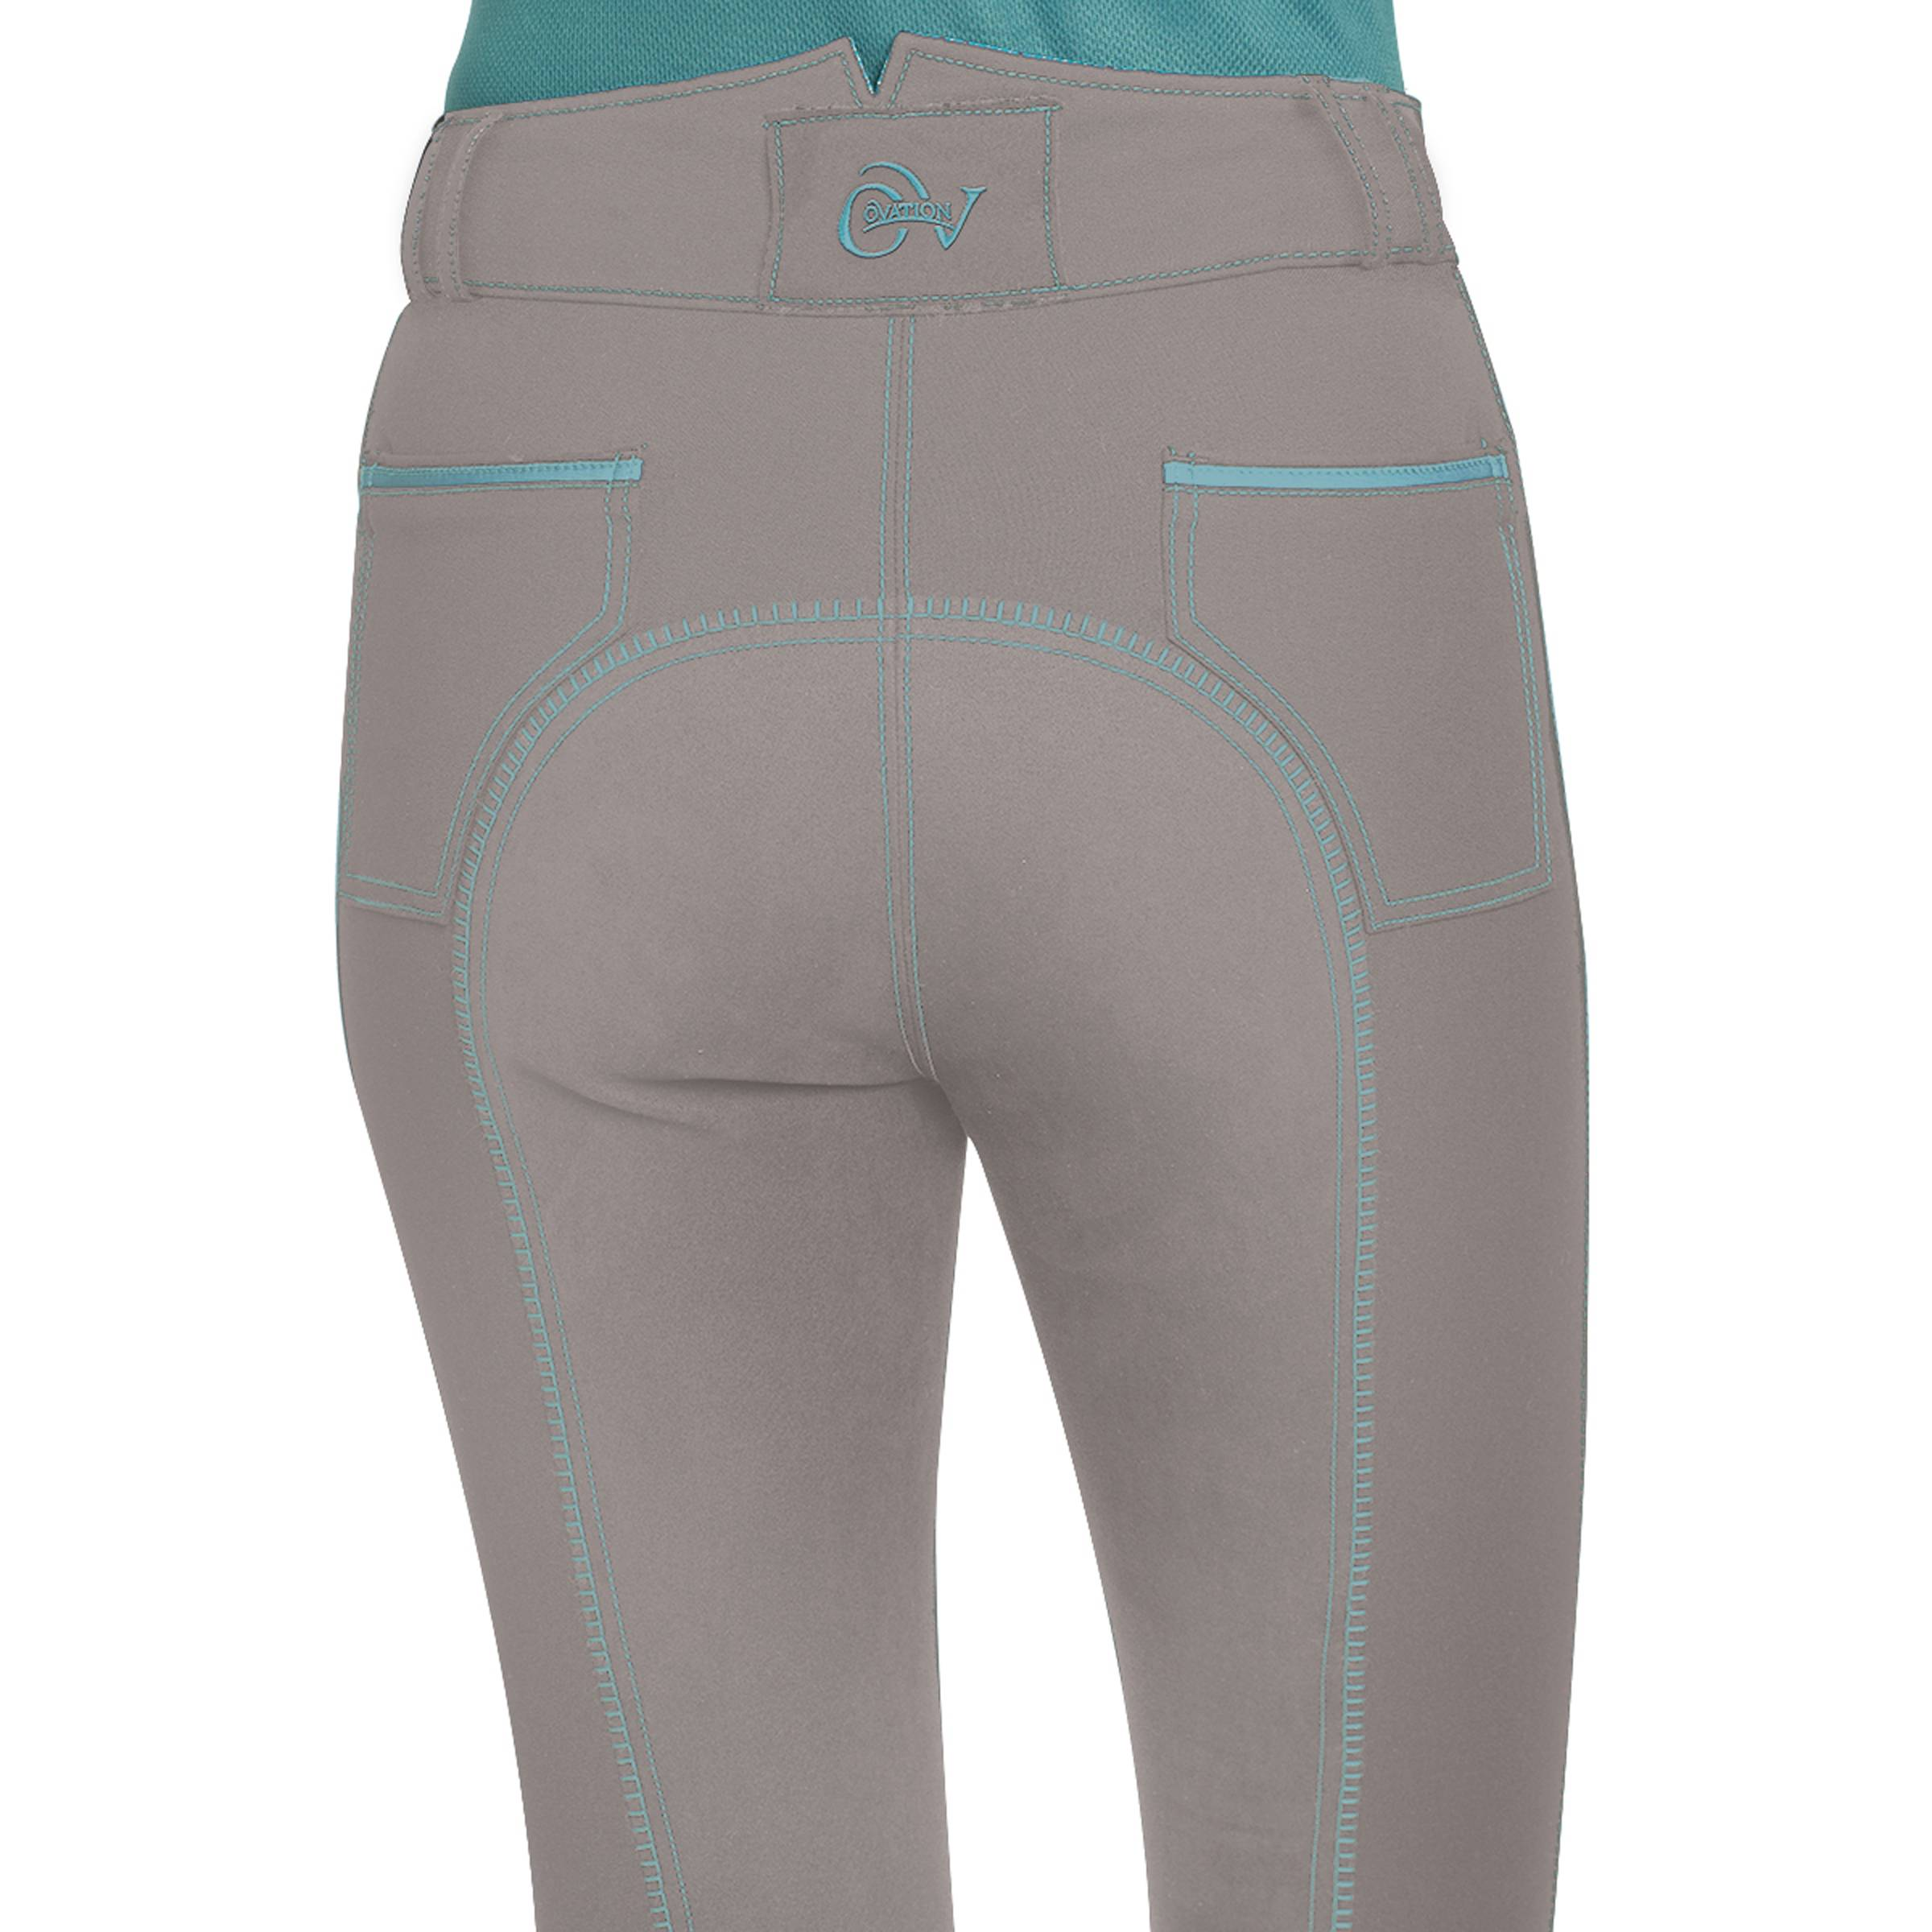 Ovation Ladies Heiress Full Seat Breech